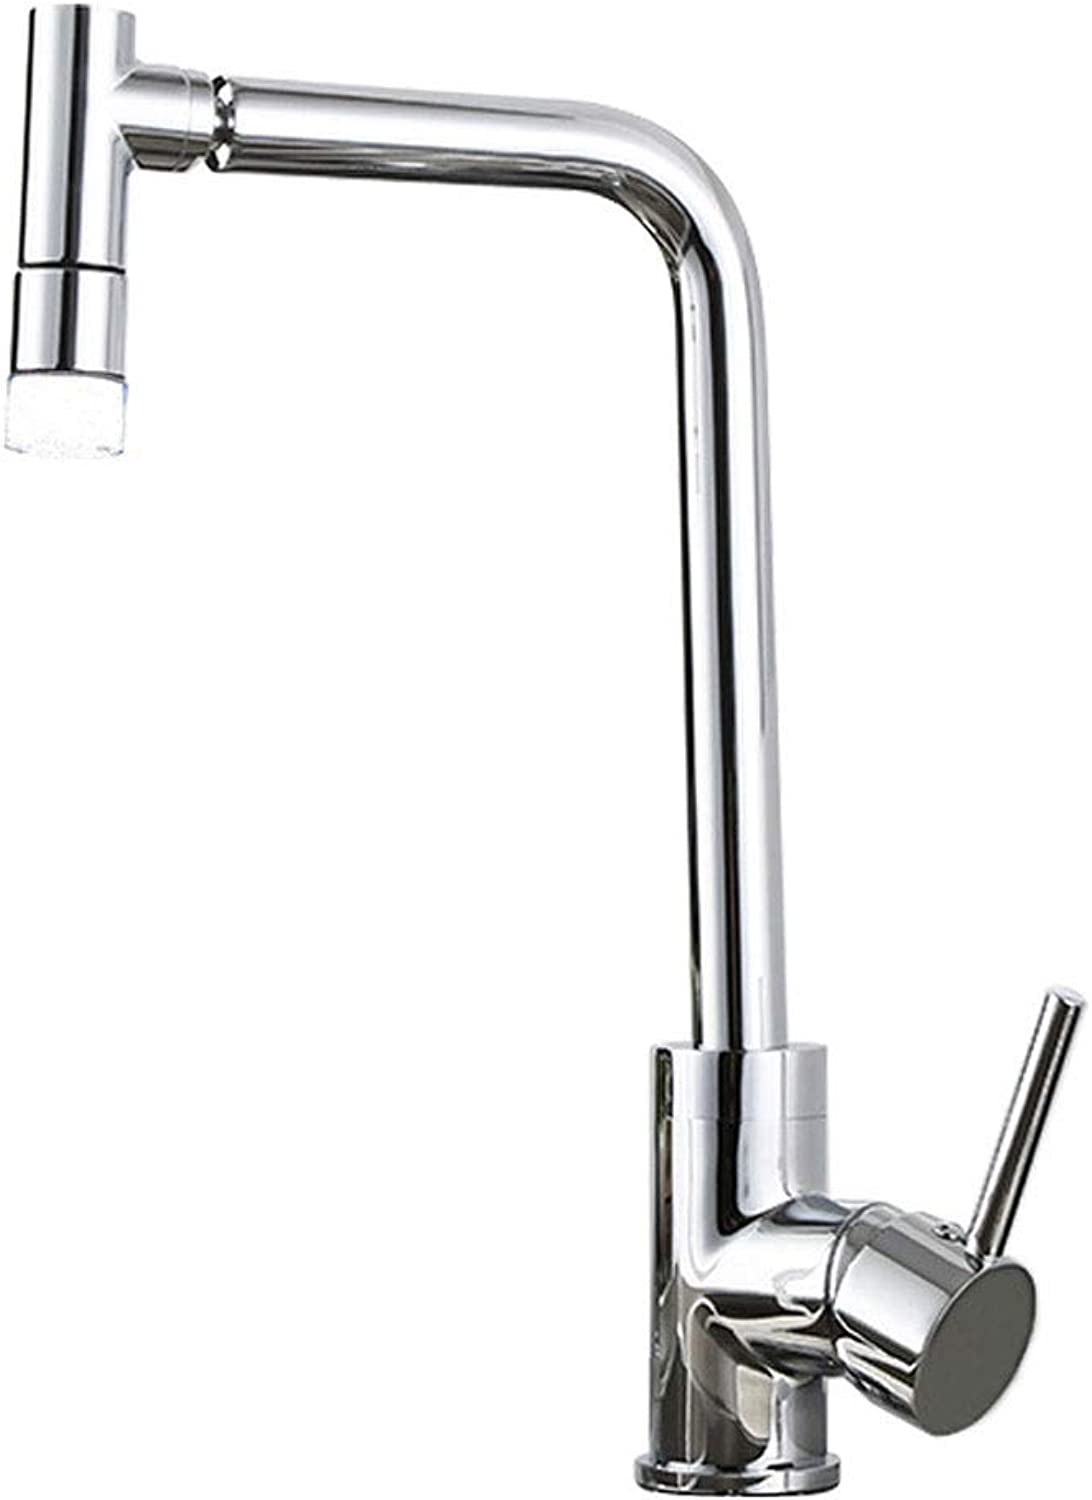 Kitchen Sink Faucet Single Handle Copper, Single Hole Cold and Hot Mixed Water Can redate, LED Temperature Control Discoloration, Strong and Durable(Bubbles Water, Shower Water)